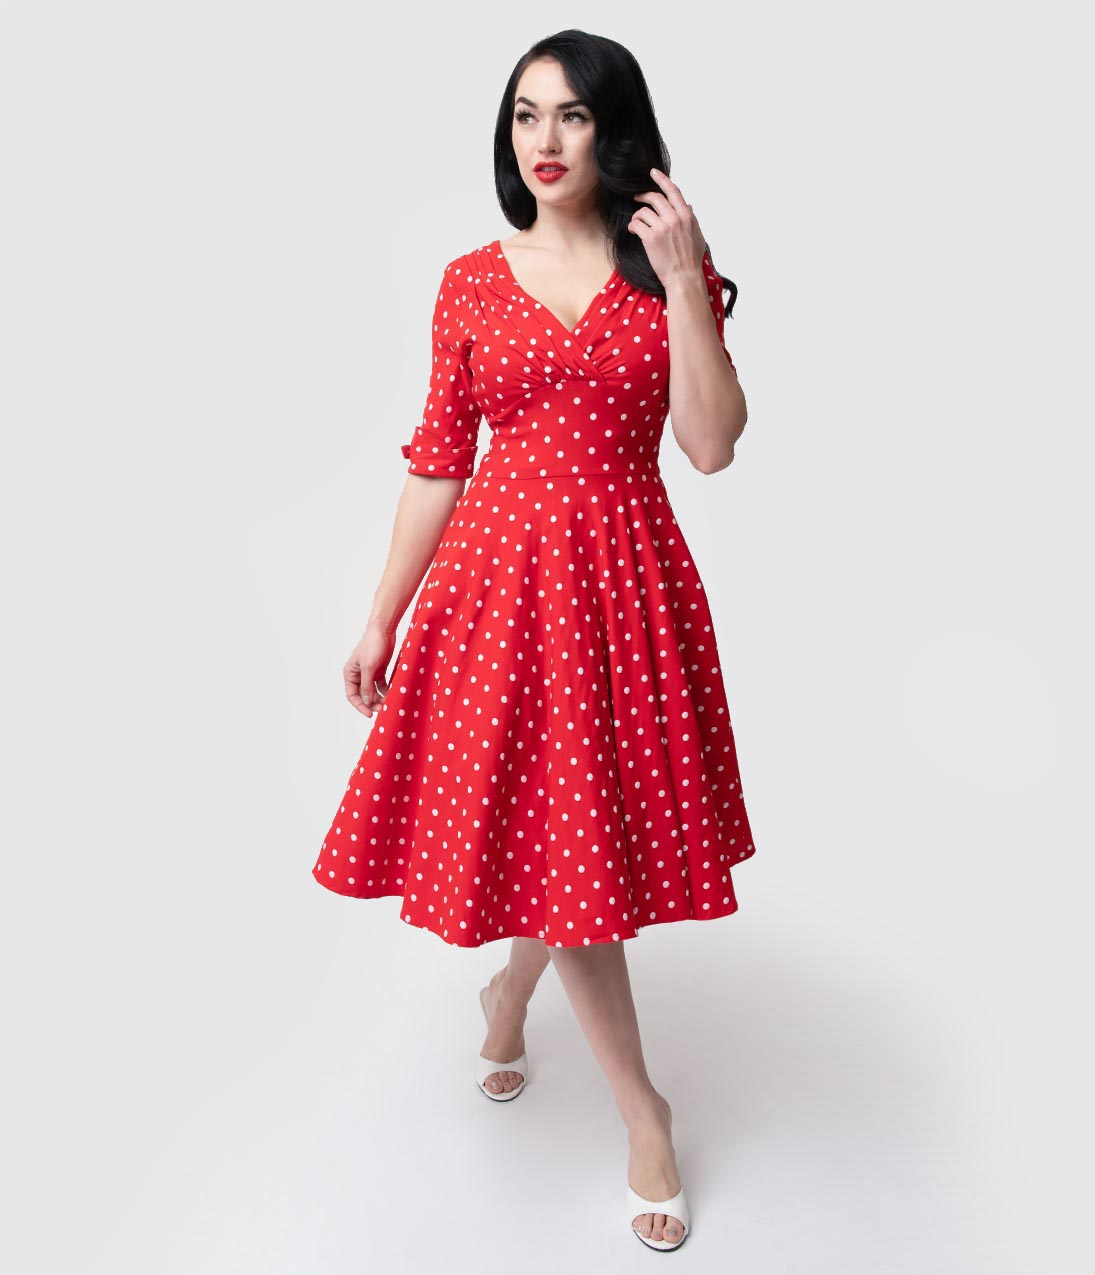 1950s Dresses, 50s Dresses | 1950s Style Dresses Unique Vintage 1950S Red  White Dot Delores Swing Dress With Sleeves $92.00 AT vintagedancer.com